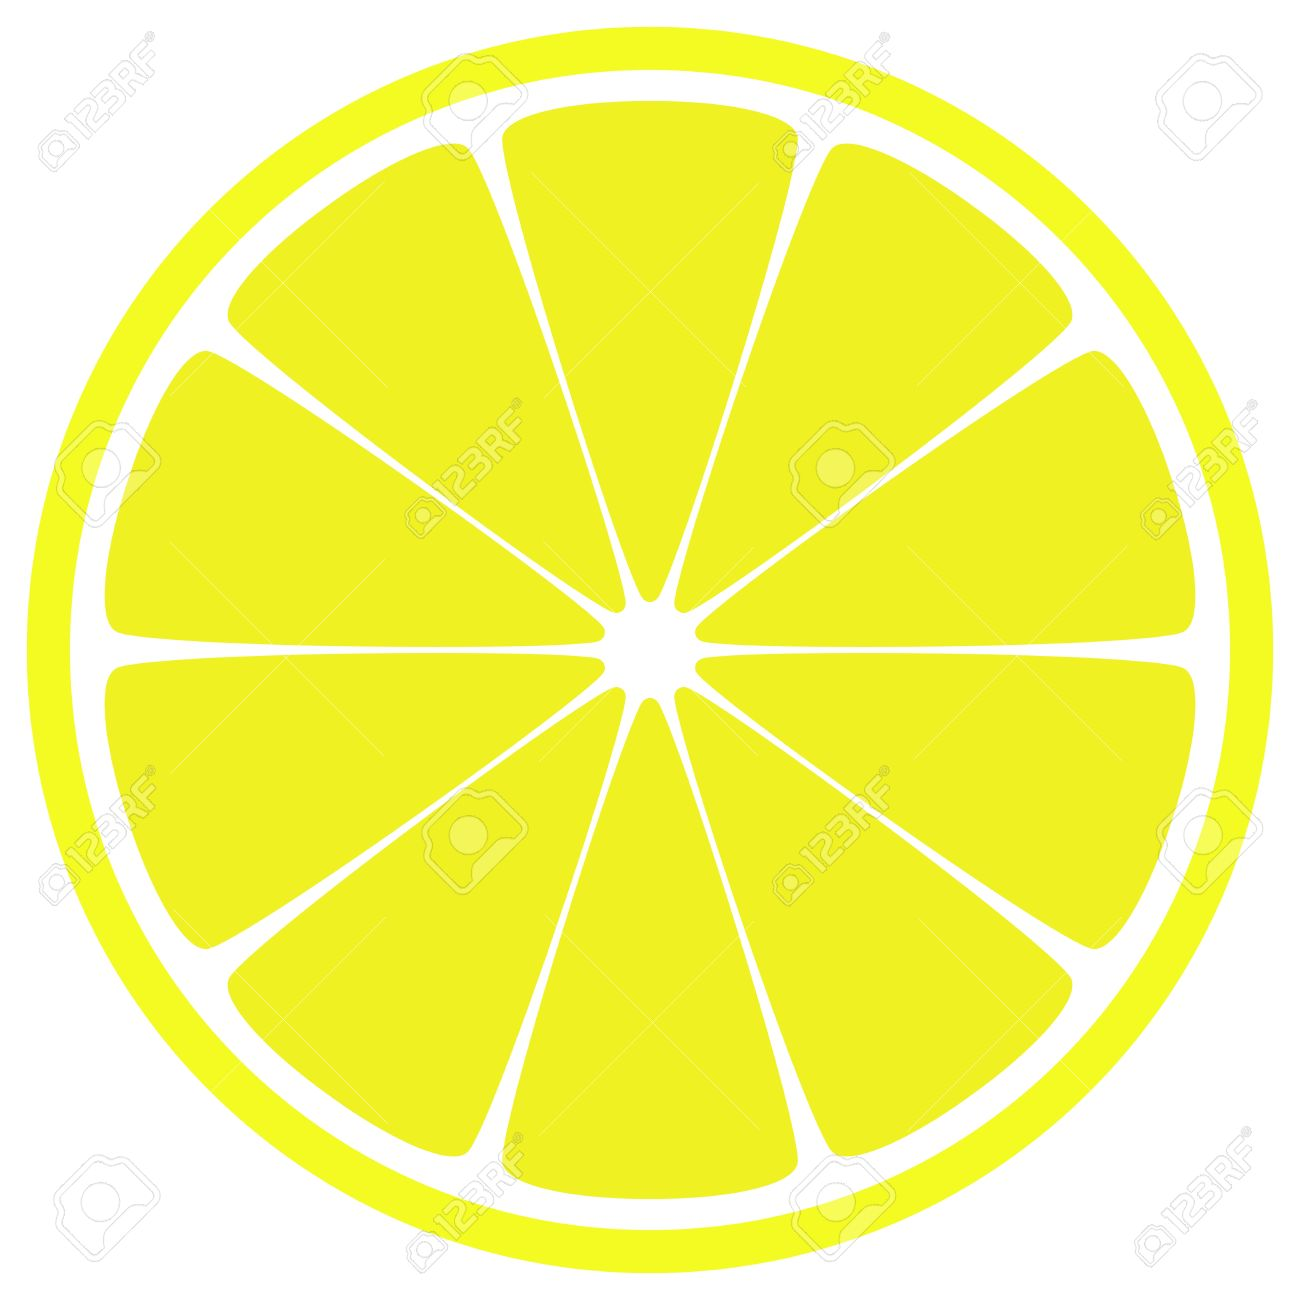 Lemon Slice Royalty Free Cliparts, Vectors, And Stock Illustration.